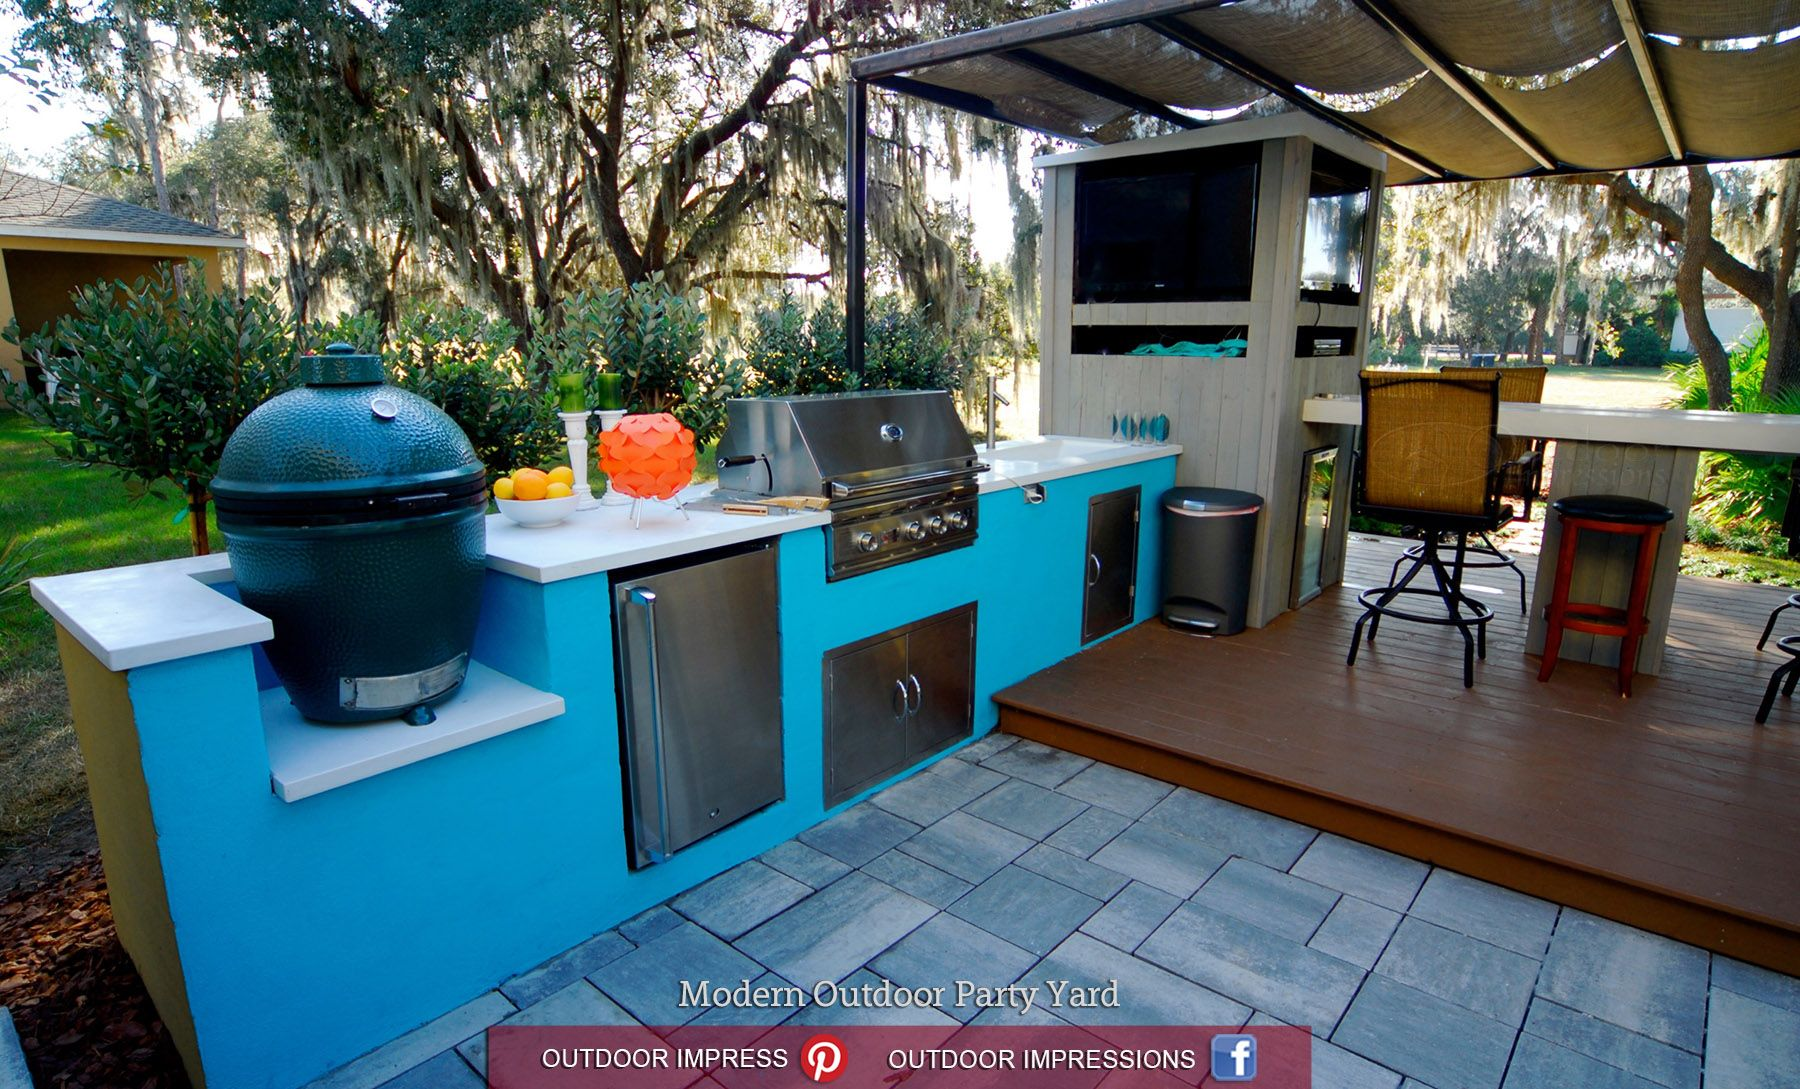 Modern Outdoor Party Yard: outdoor kitchen with smoker, refrigerator ...